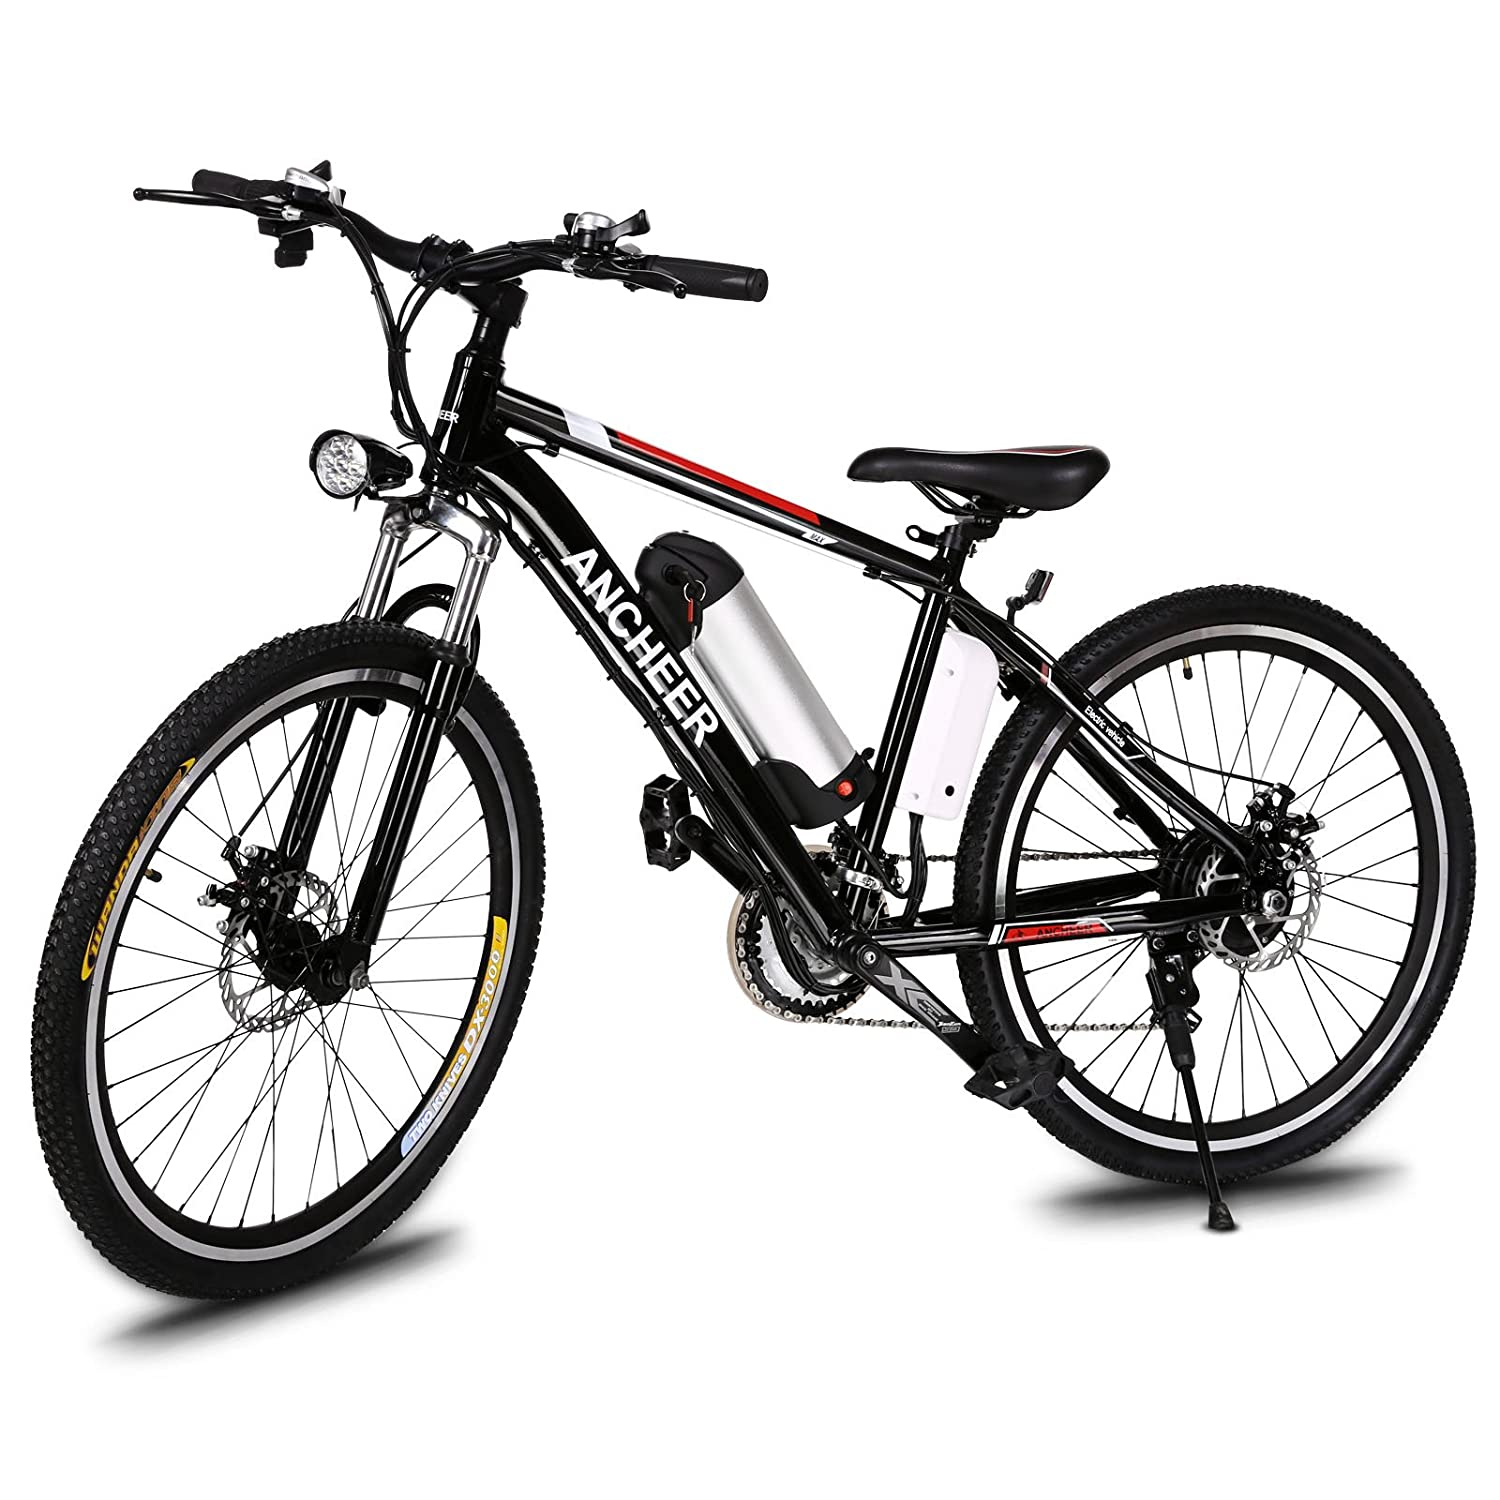 Ancheer Pro Electric Mountain Bike}